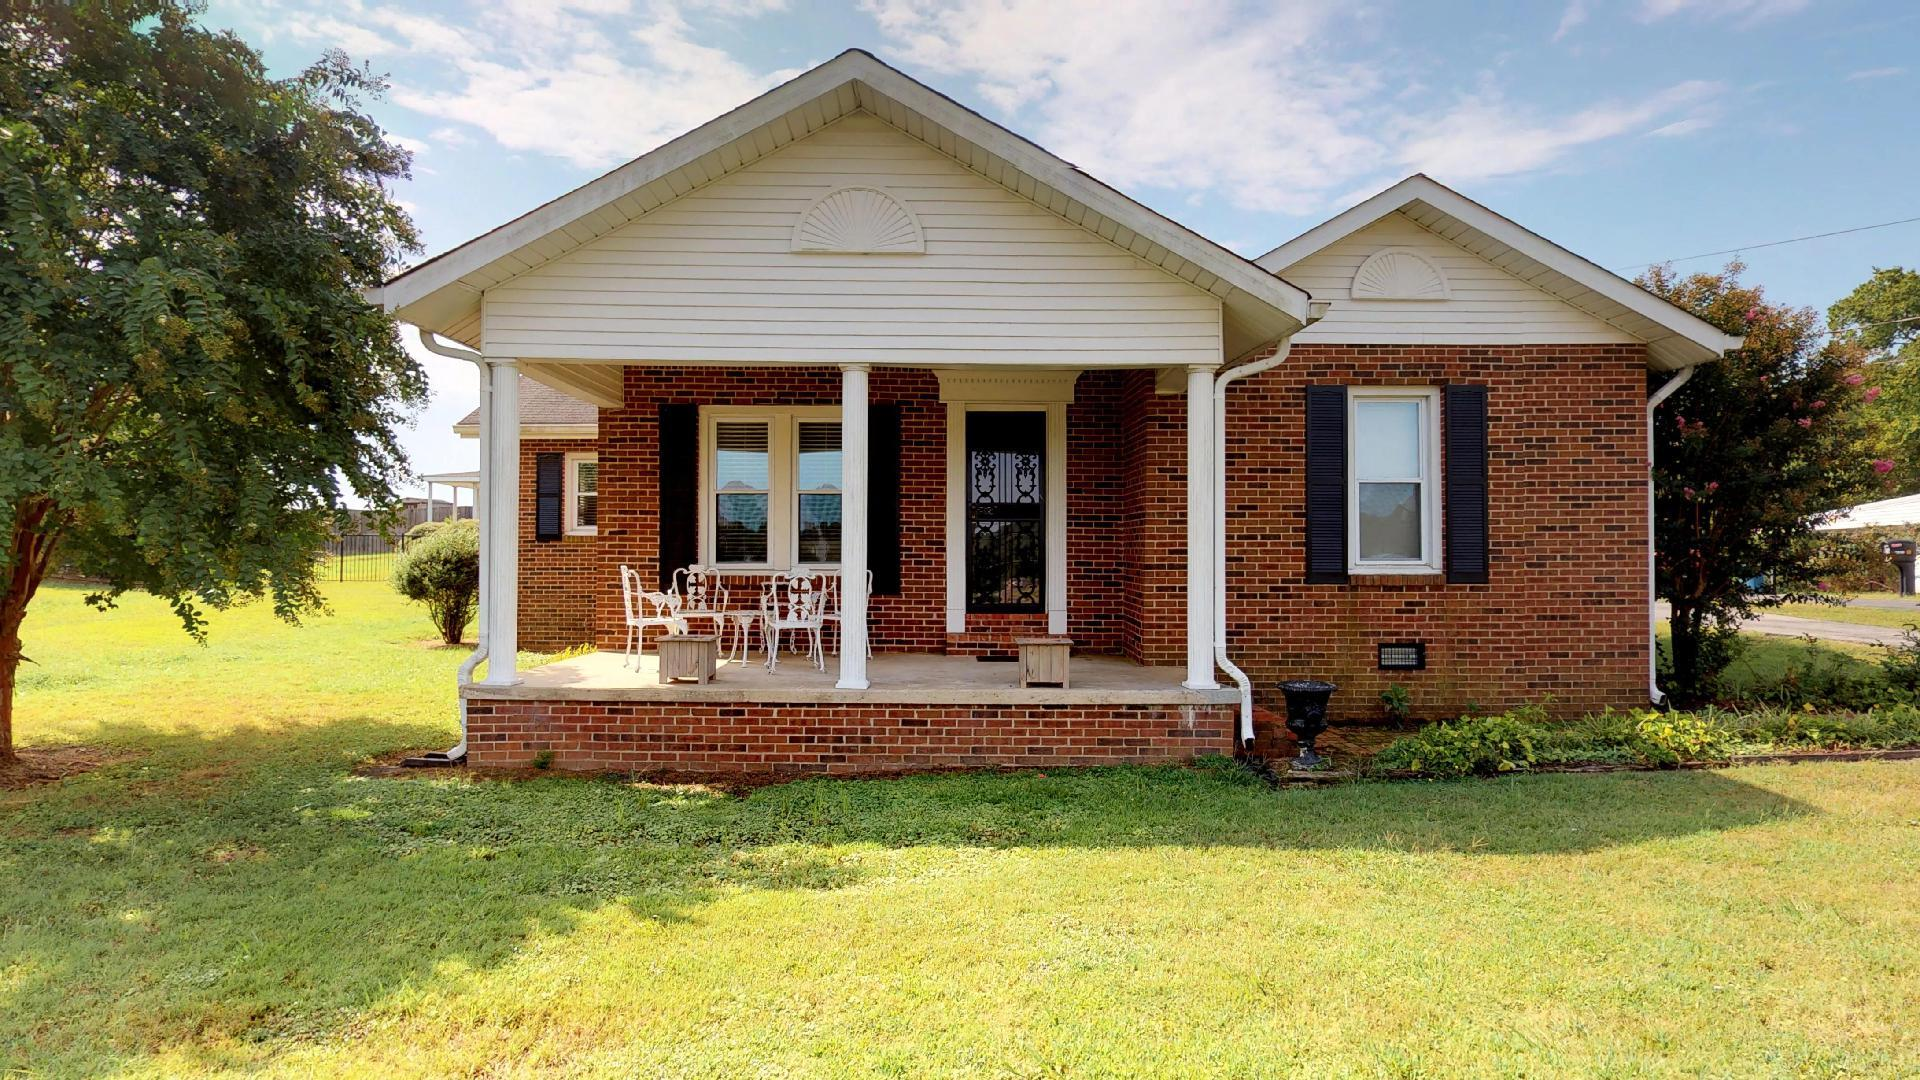 29170 Broad, Hollow Rock, TN 38342 - Hollow Rock, TN real estate listing